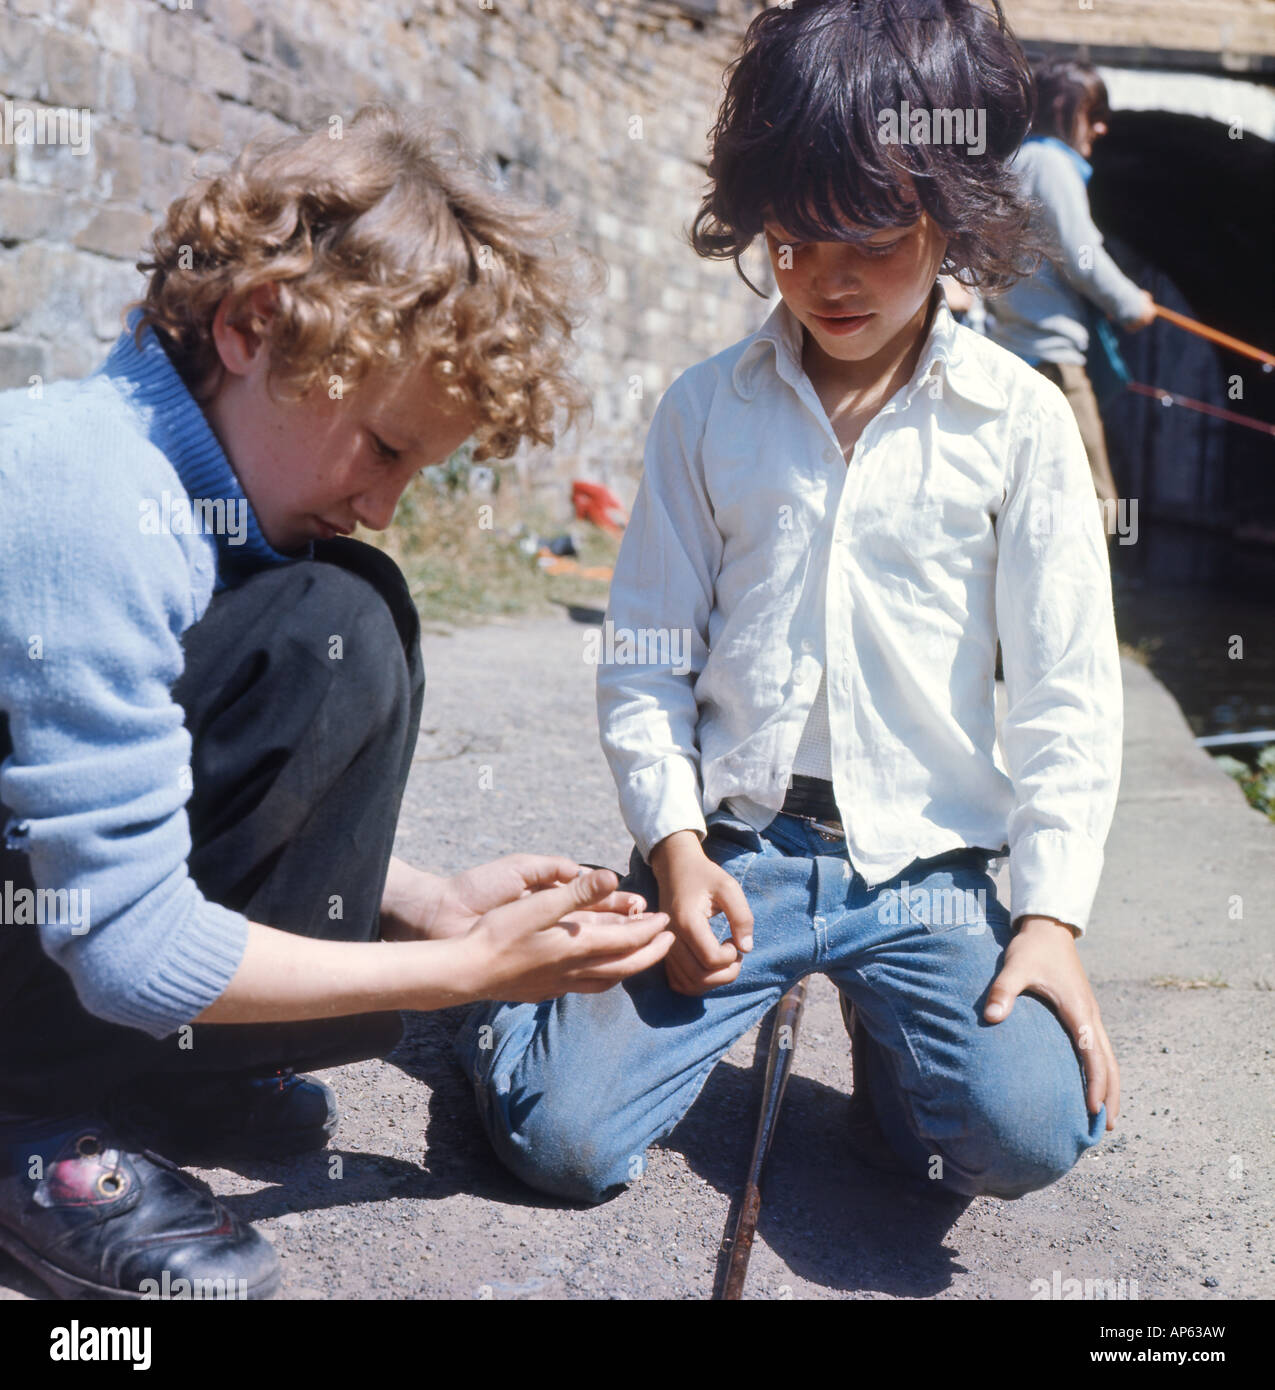 Two boys fishing on the canal in Leeds 1970s England UK  KATHY DEWITT Stock Photo